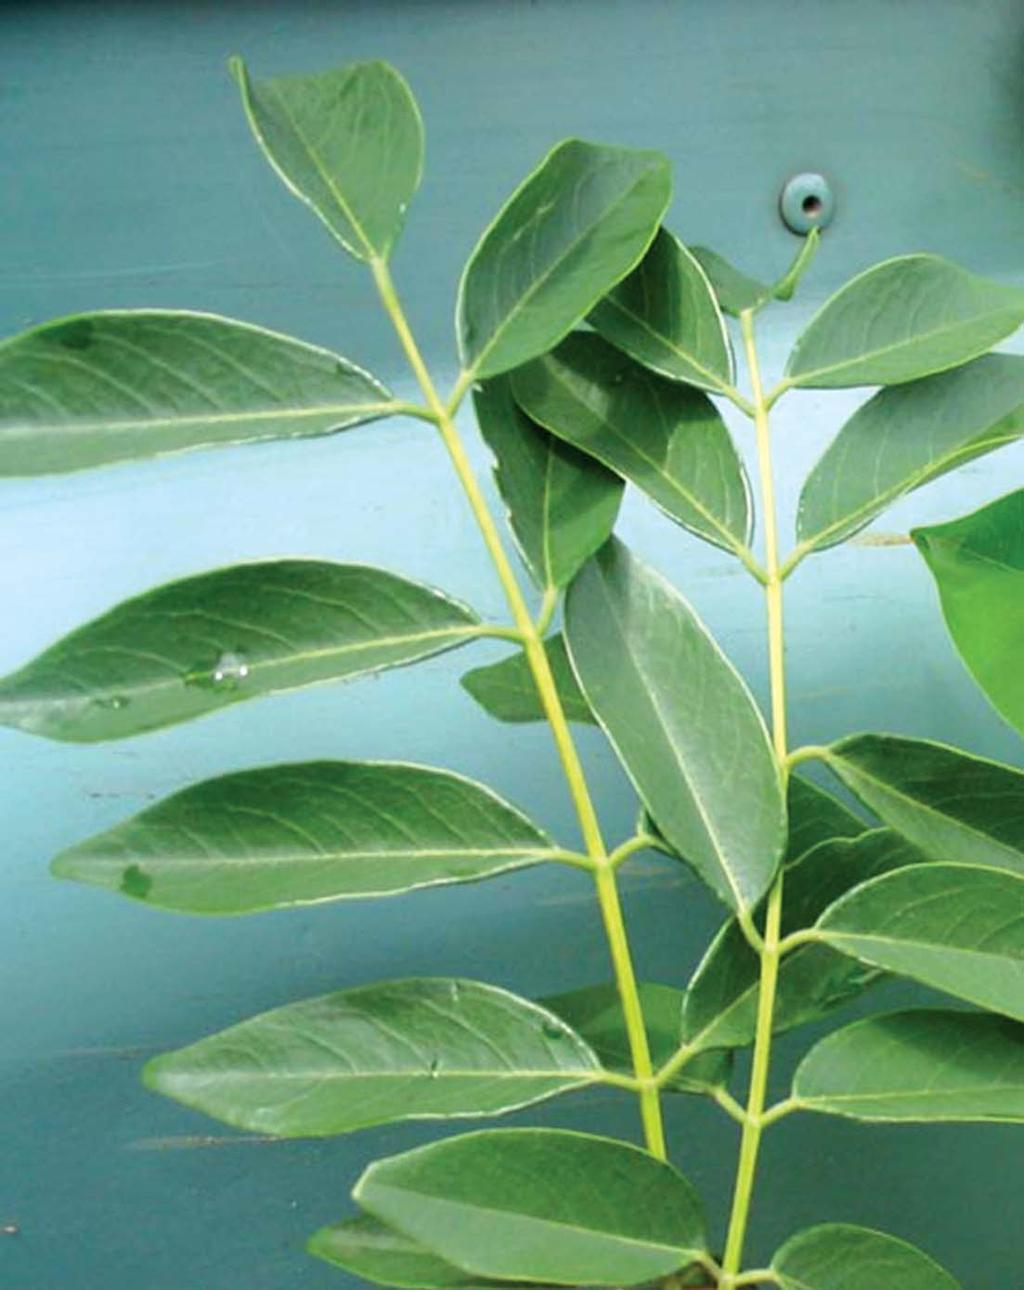 plants betes. In Siddha system of medicine, the plant has been prescribed against painful joints, peripheral neuritis, constipation, and burning feeling during urination.